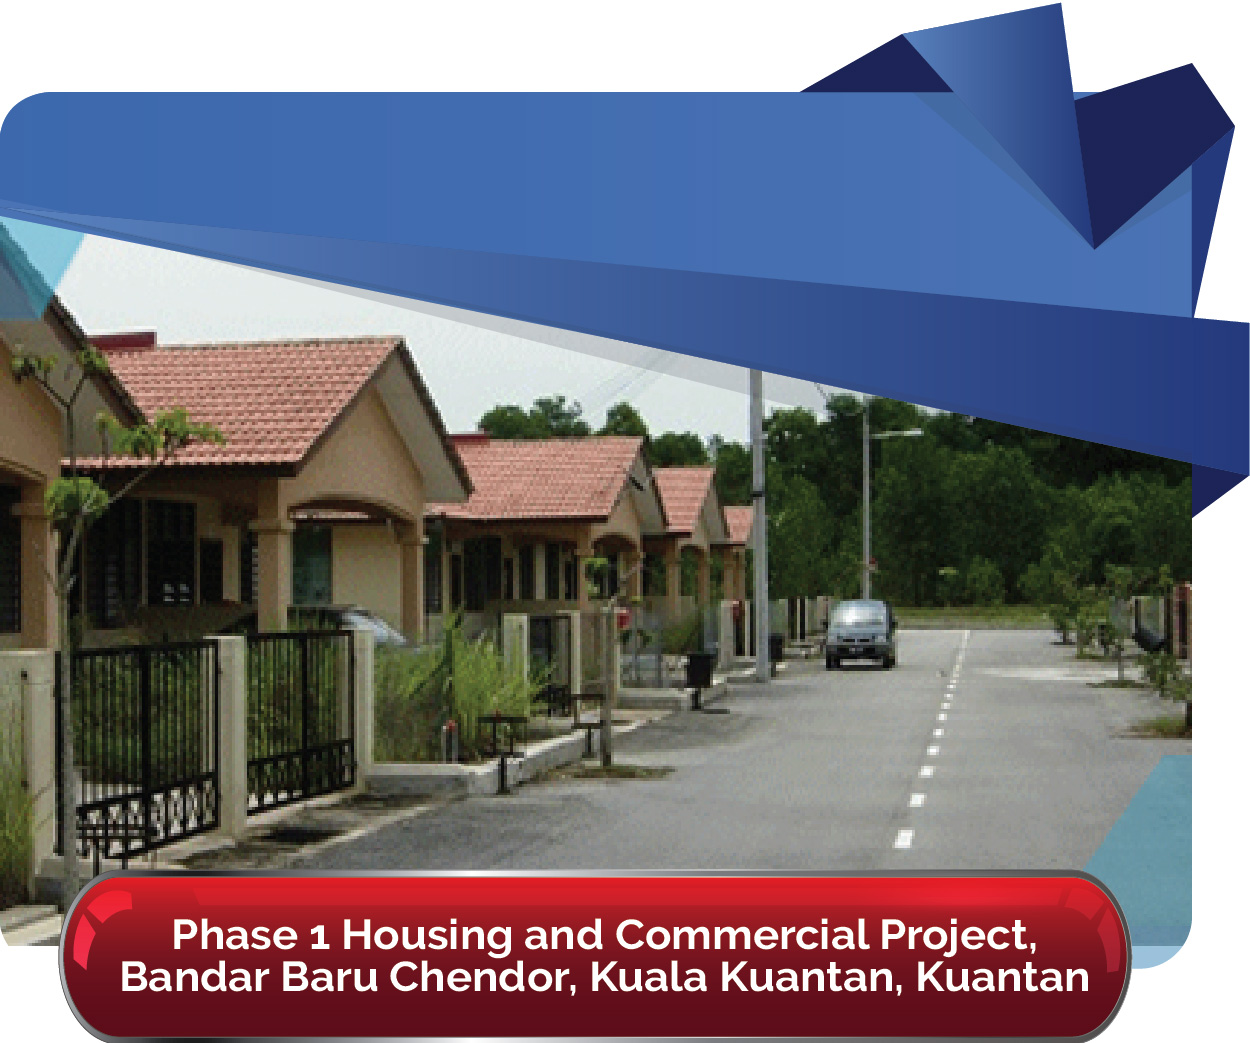 Phase 1 Housing and Commercial Project Bandar Baru Chendor 01